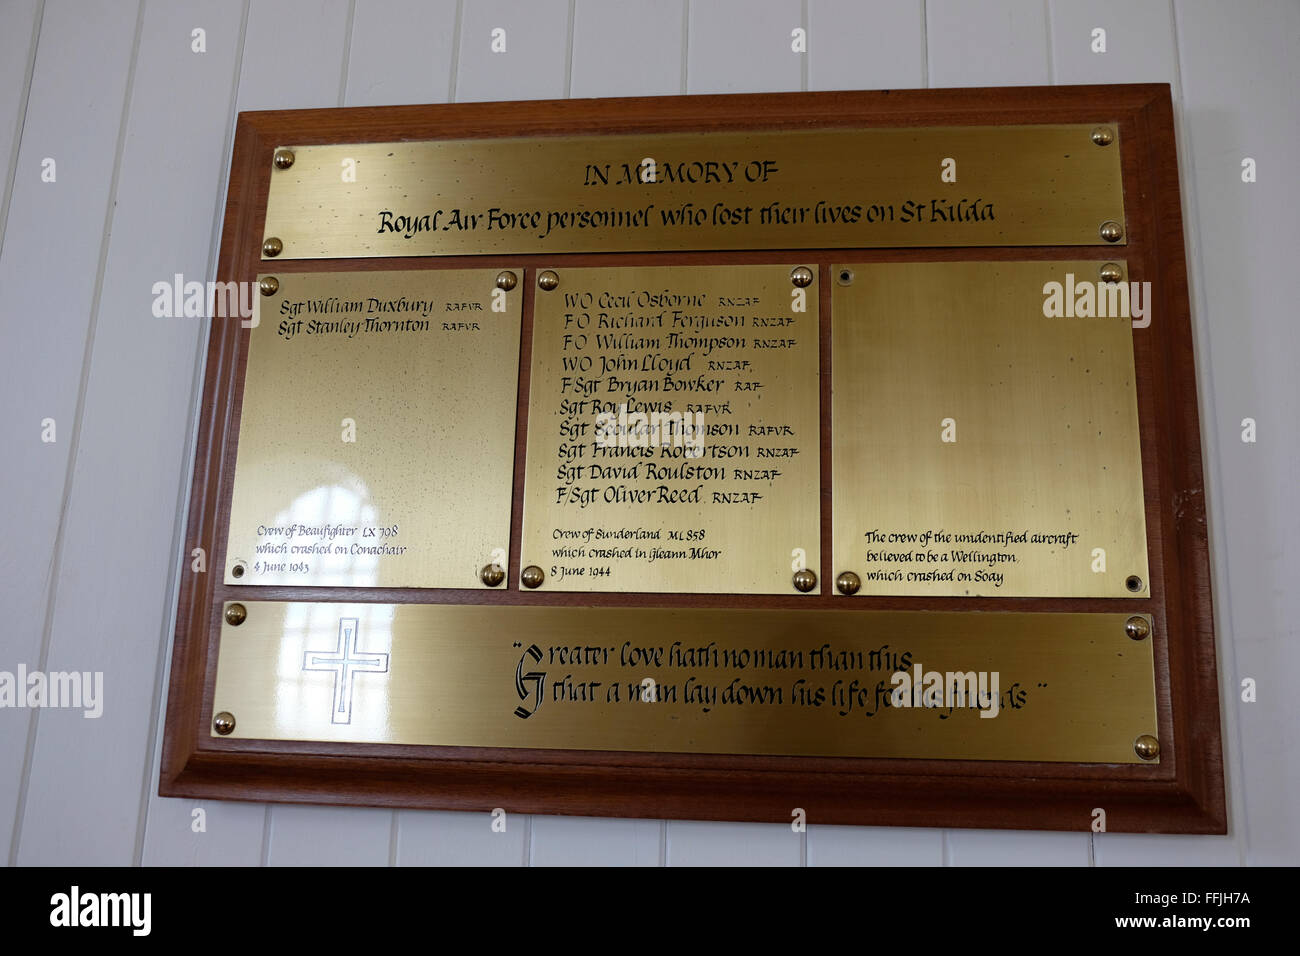 church plaque airmen killed ww2 on st kilda - Stock Image